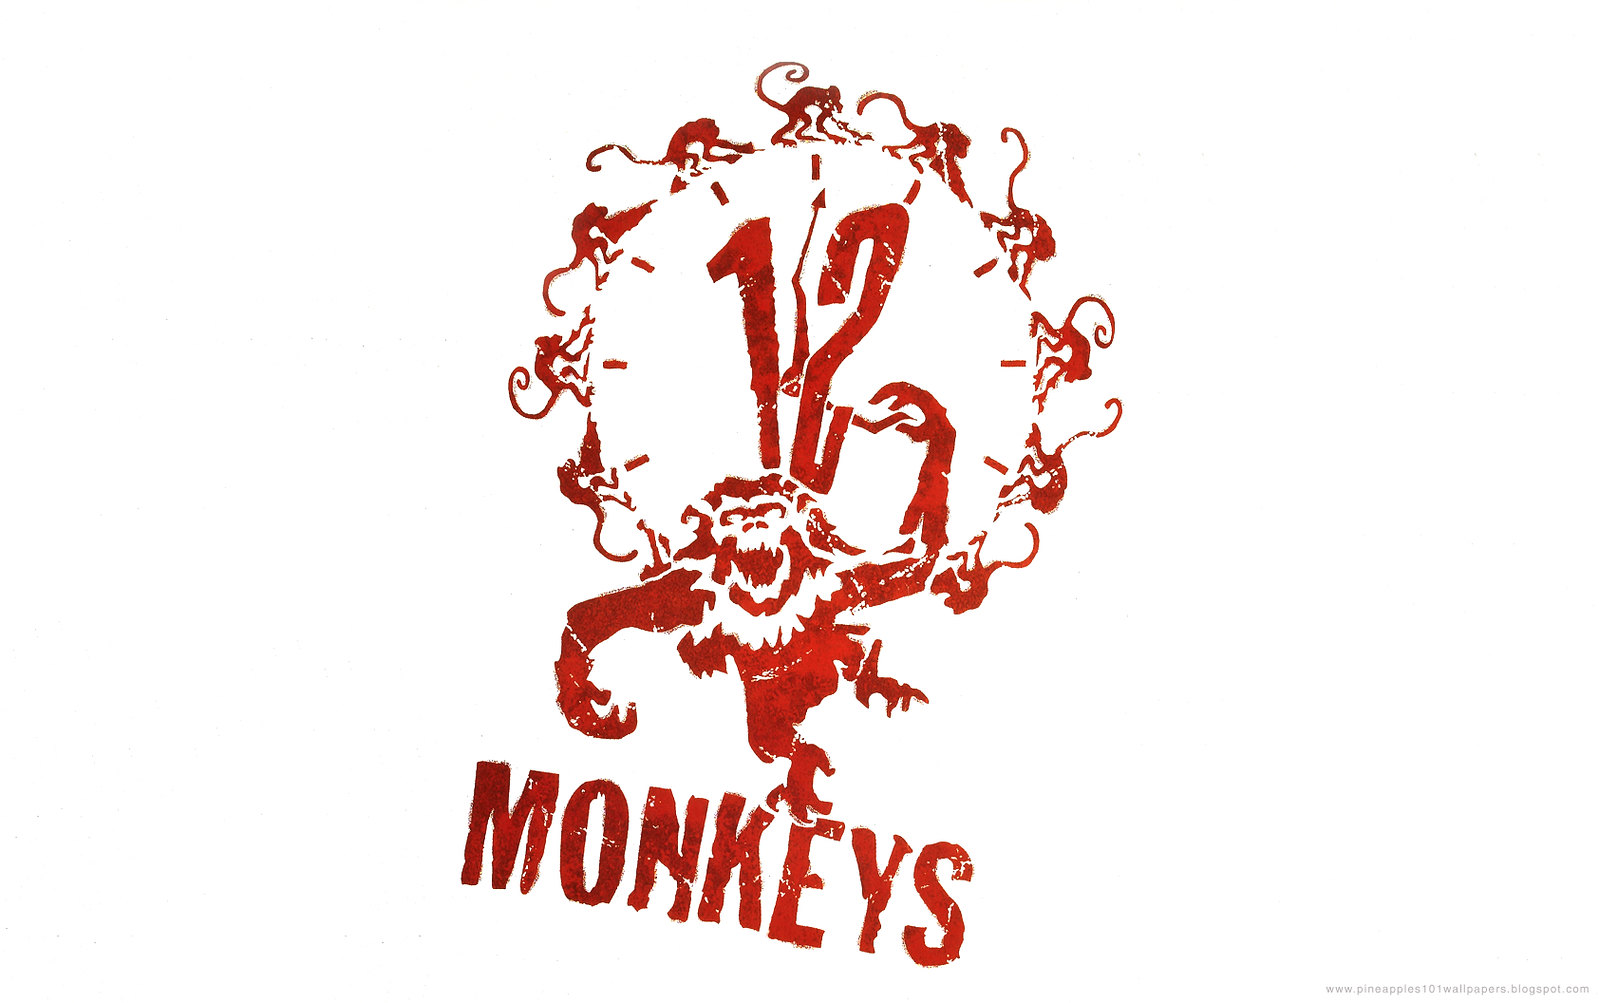 12_monkeys_logo_wallpaper.jpg